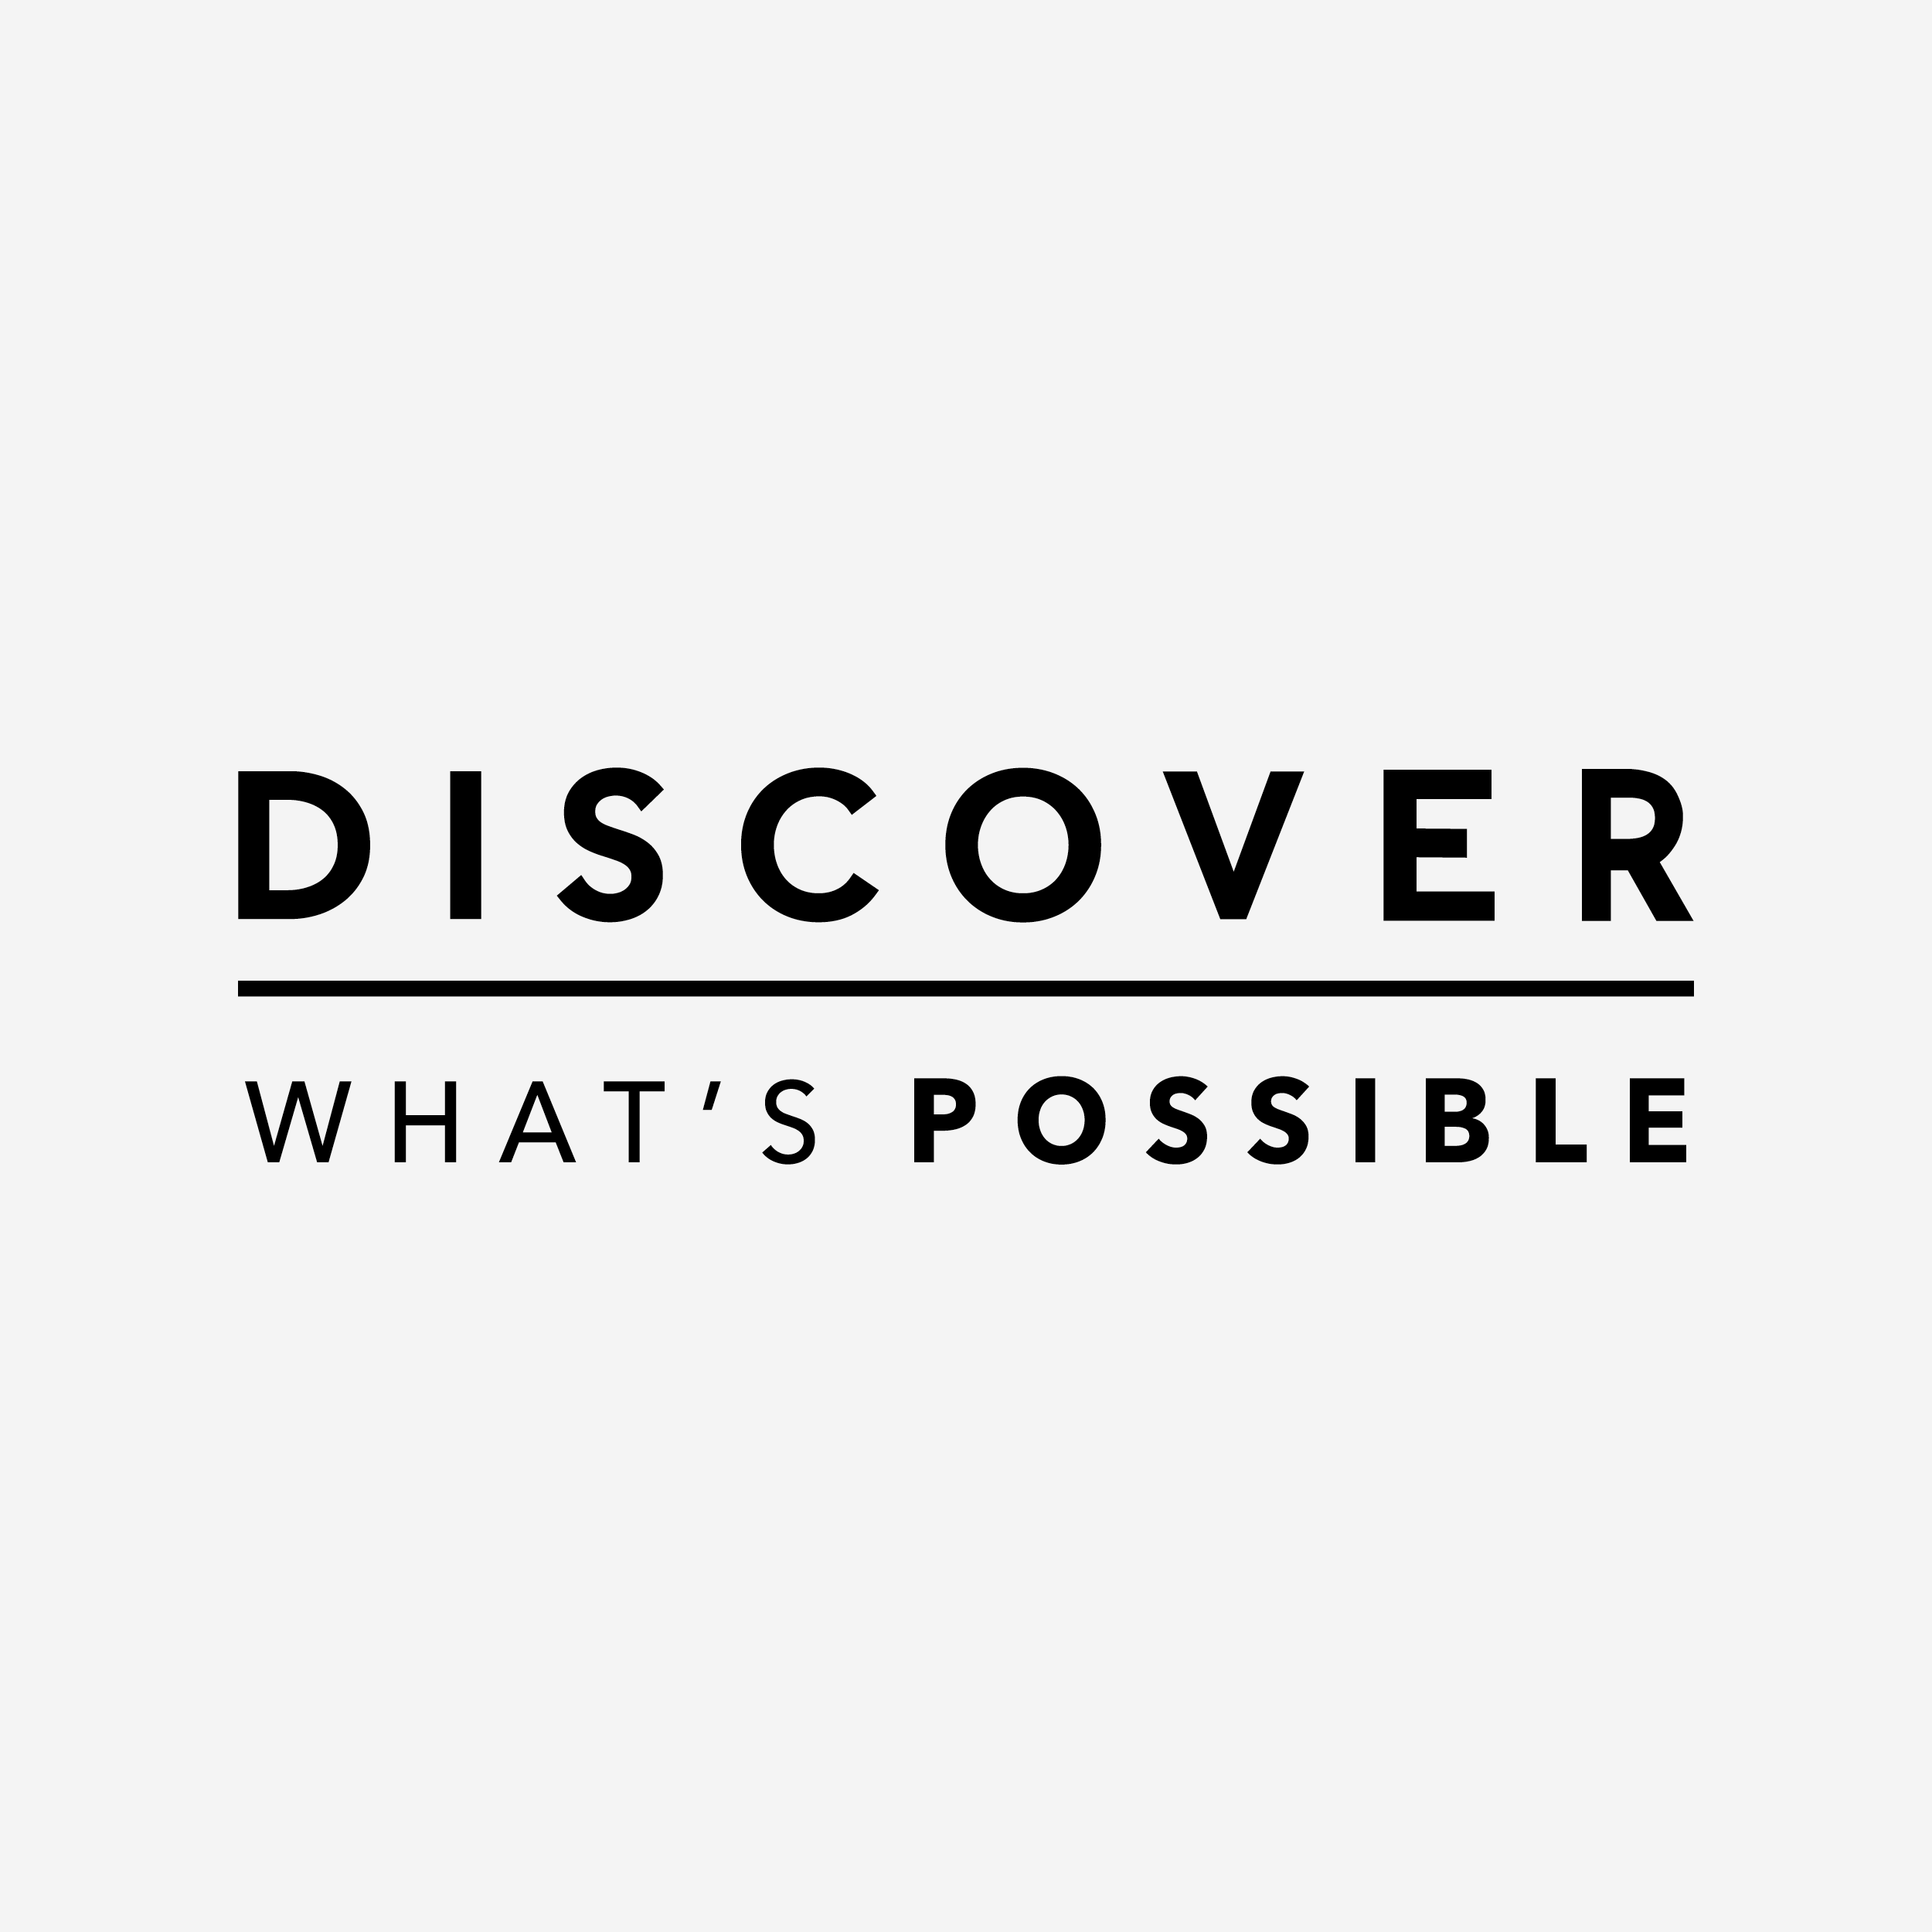 Discover What's Possible - Kira Hyde Creative